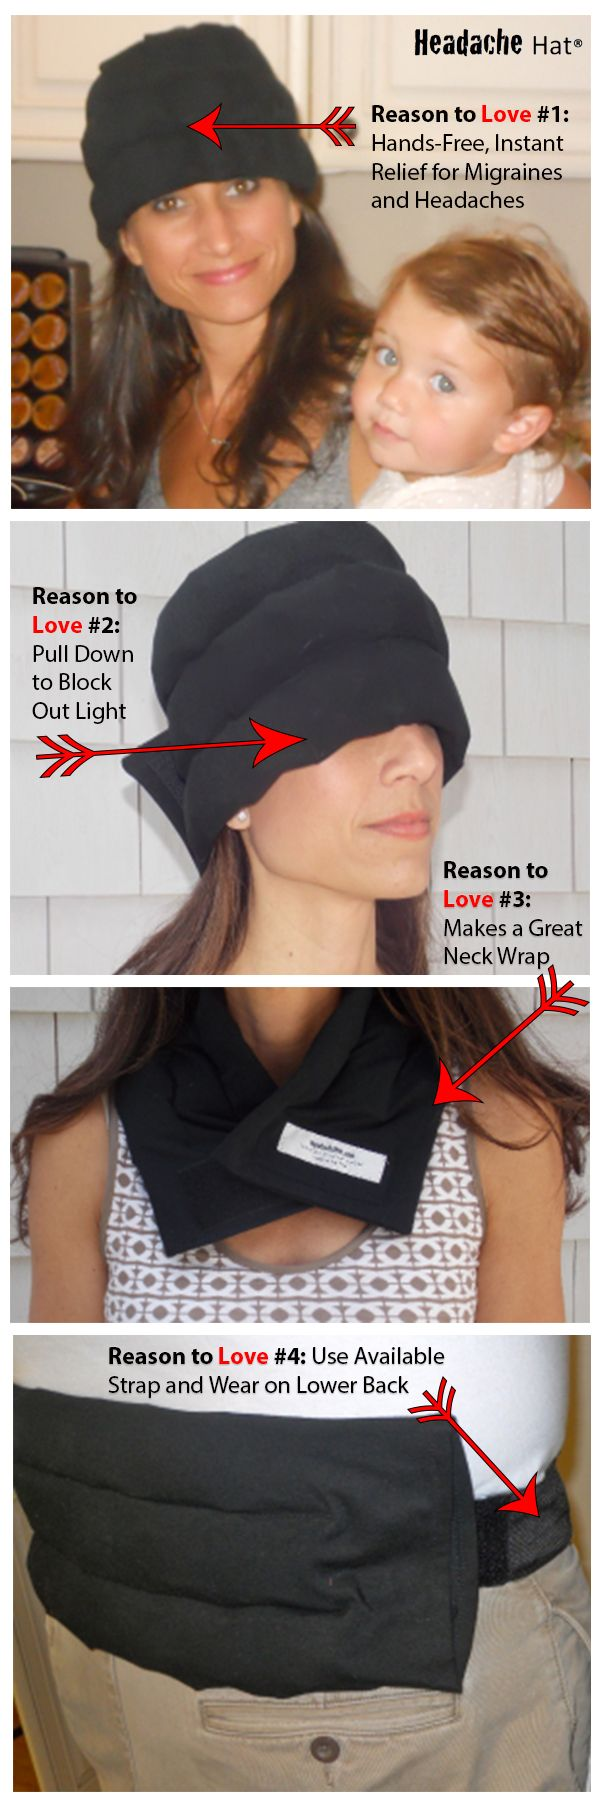 This comfortable, wearable ice pack provides effective, natural relief for migraines and headaches so you can keep going. It also makes a great knee wrap, or back wrap (with the available extender strap). You'll find lots of uses for this innovative product and it makes a great gift for the migraine sufferer or athlete in your life. Order at www.headachehat.com